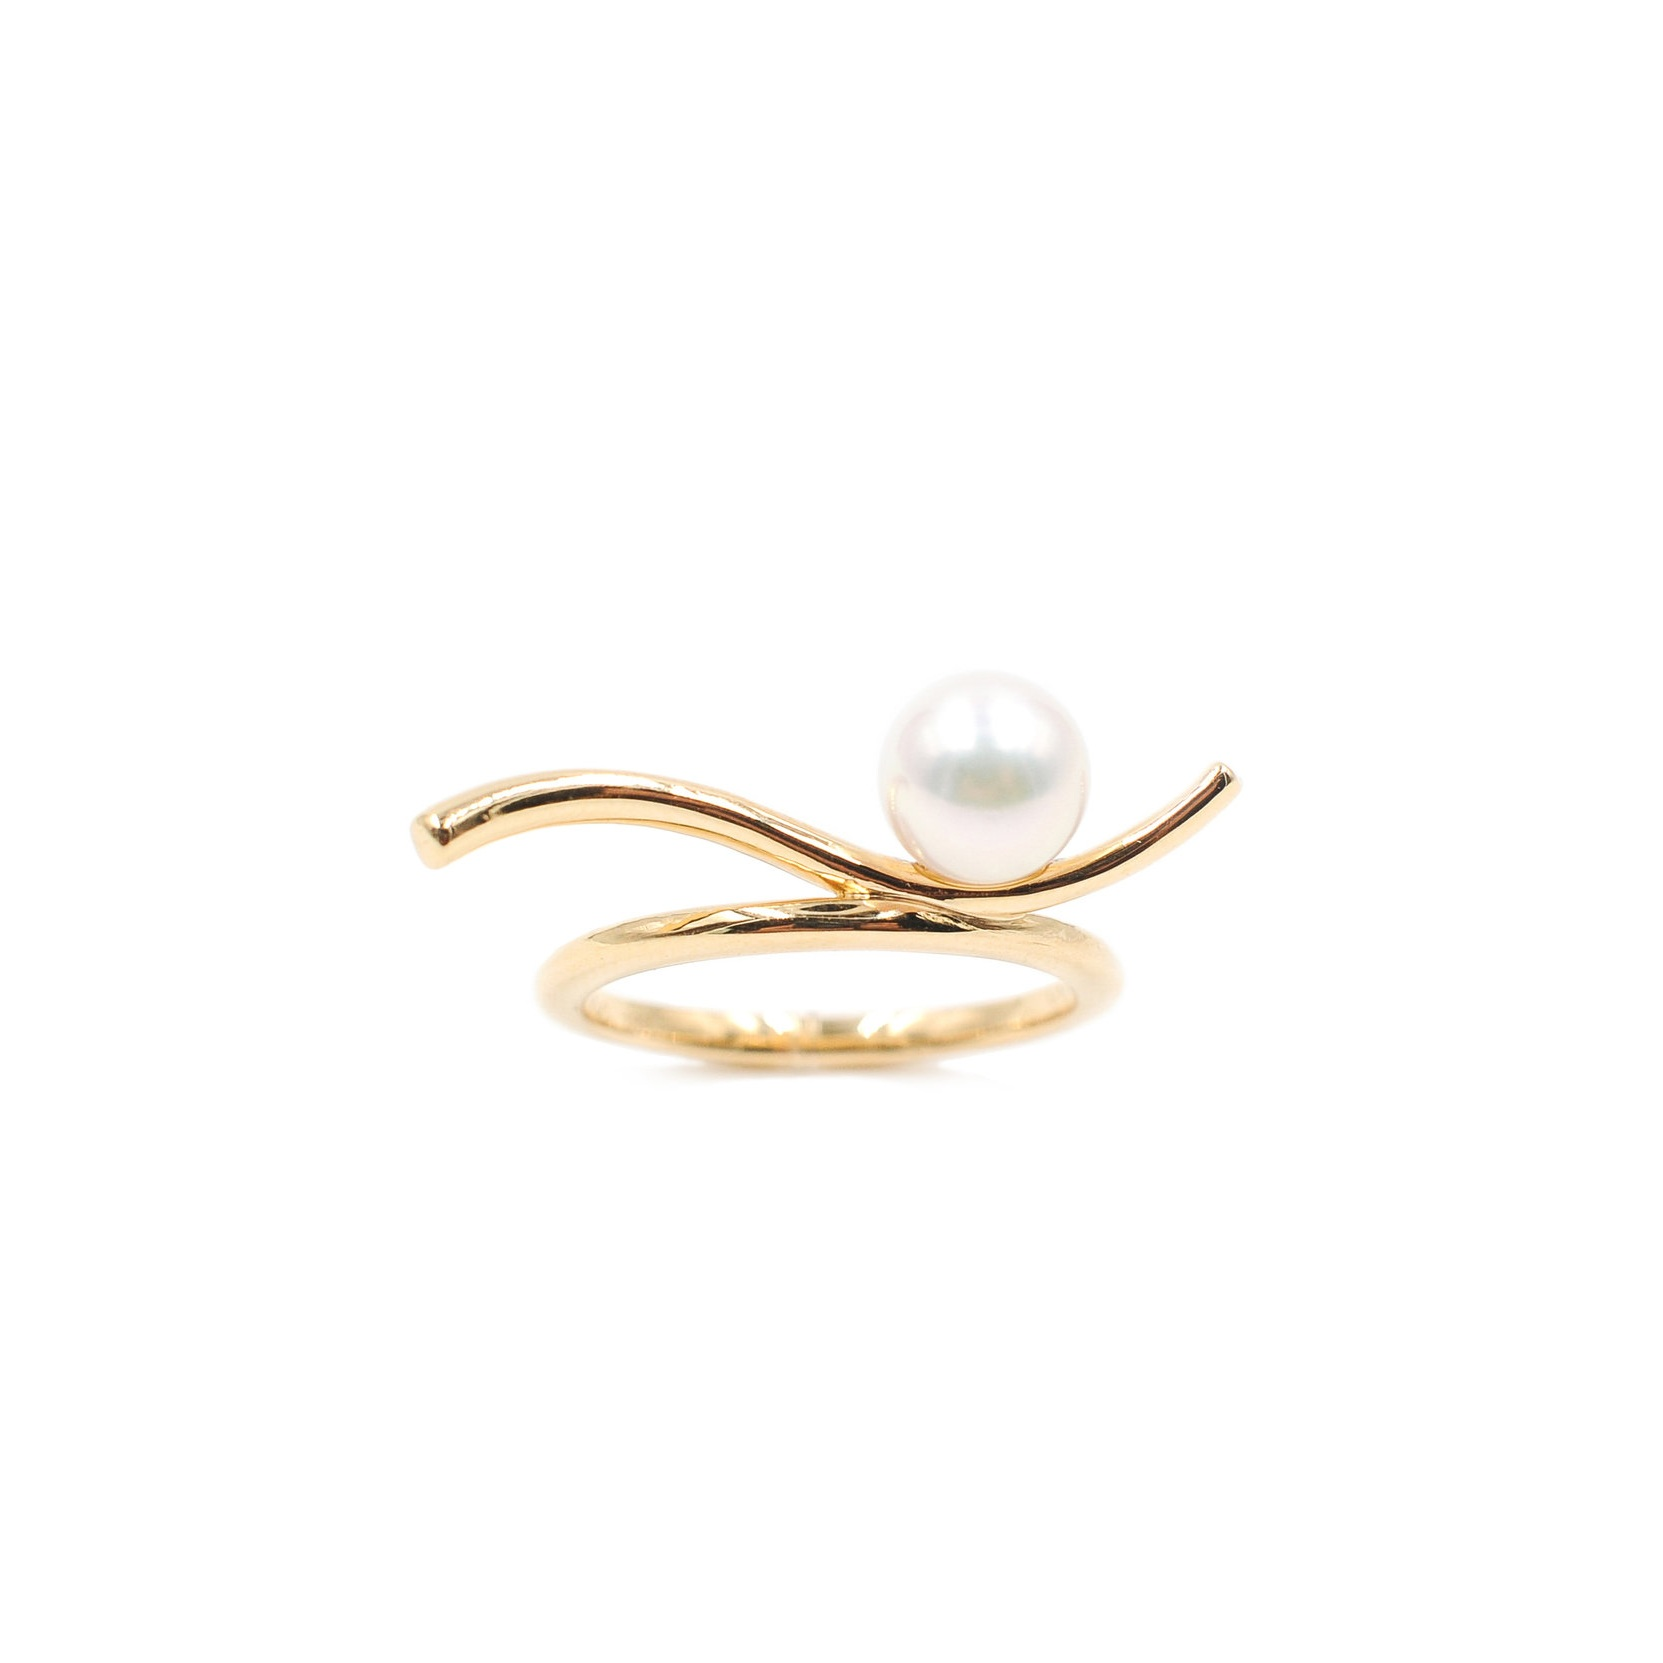 Pearl Surfing a Gold Wave Ring | 18K yellow gold, pearl